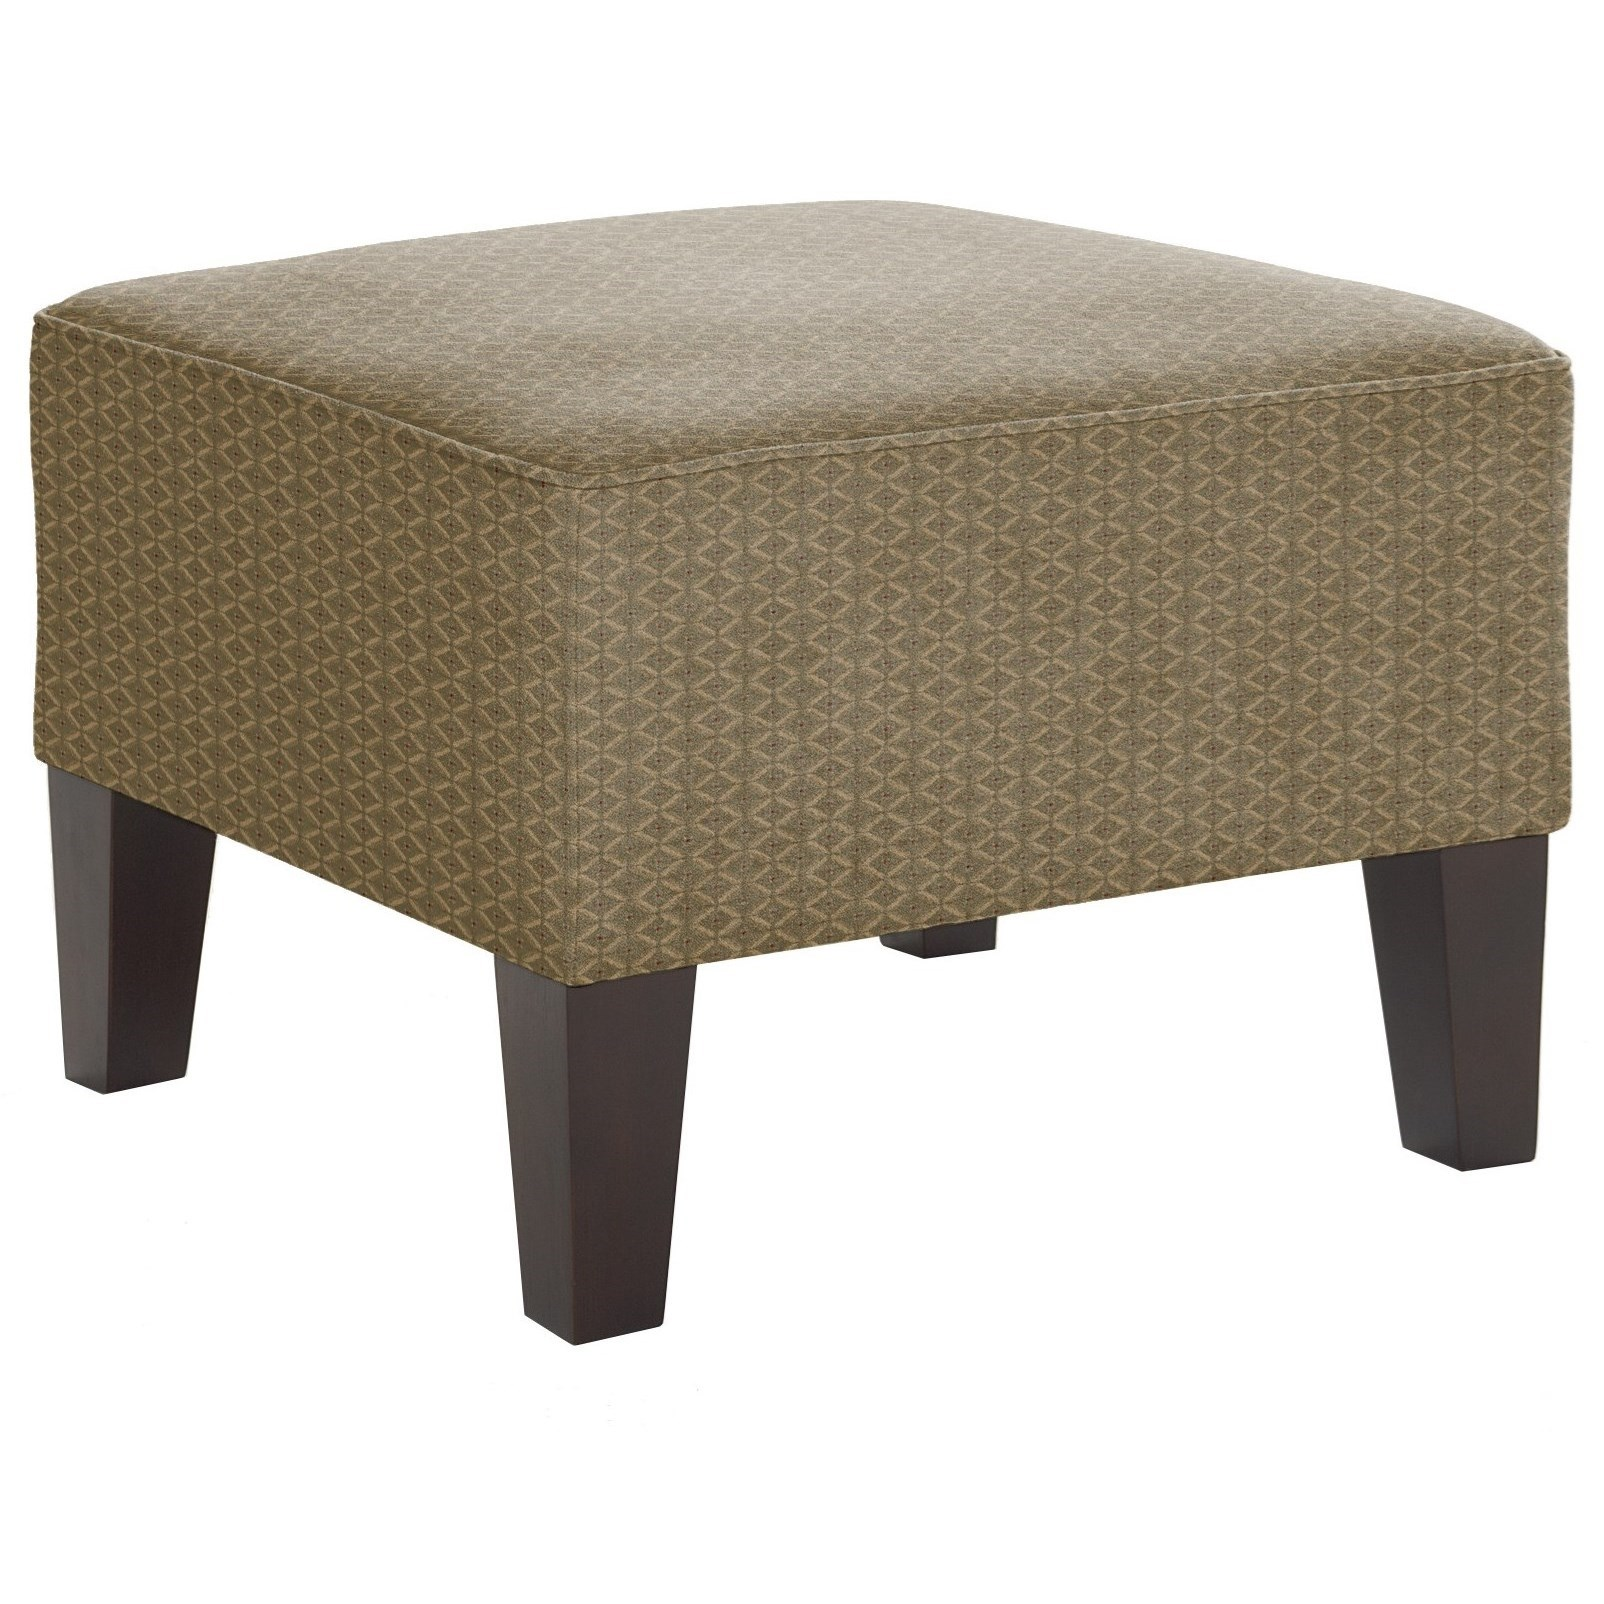 Best Home Furnishings Ottomans Square Ottoman - Item Number: -835127658-18021